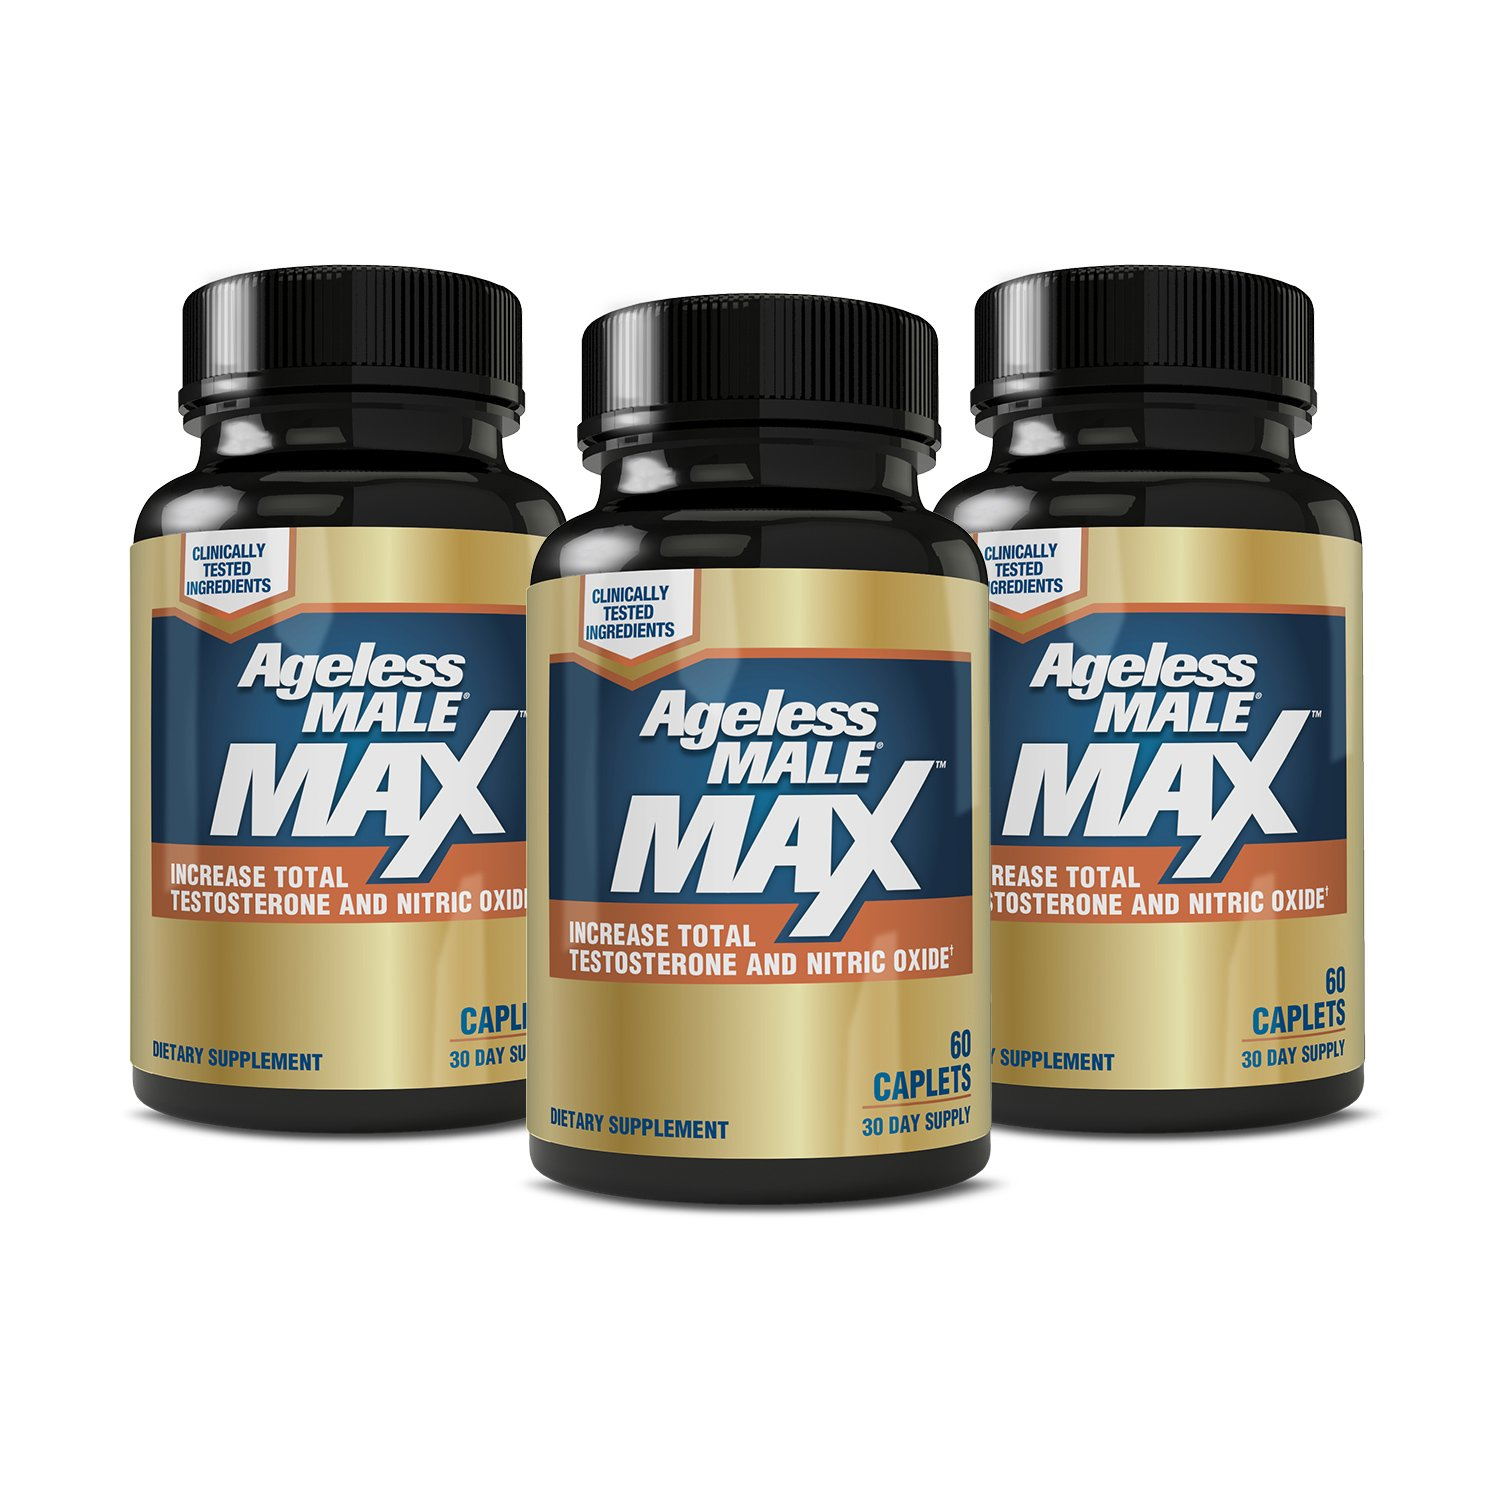 Ageless Male MAX Total Testosterone and Nitric Oxide Booster Supplement for Increasing Muscle Size, Stamina Enhancement, Sleep + Reducing Body Fat & Stress (3-Pack, 180 Tablets)